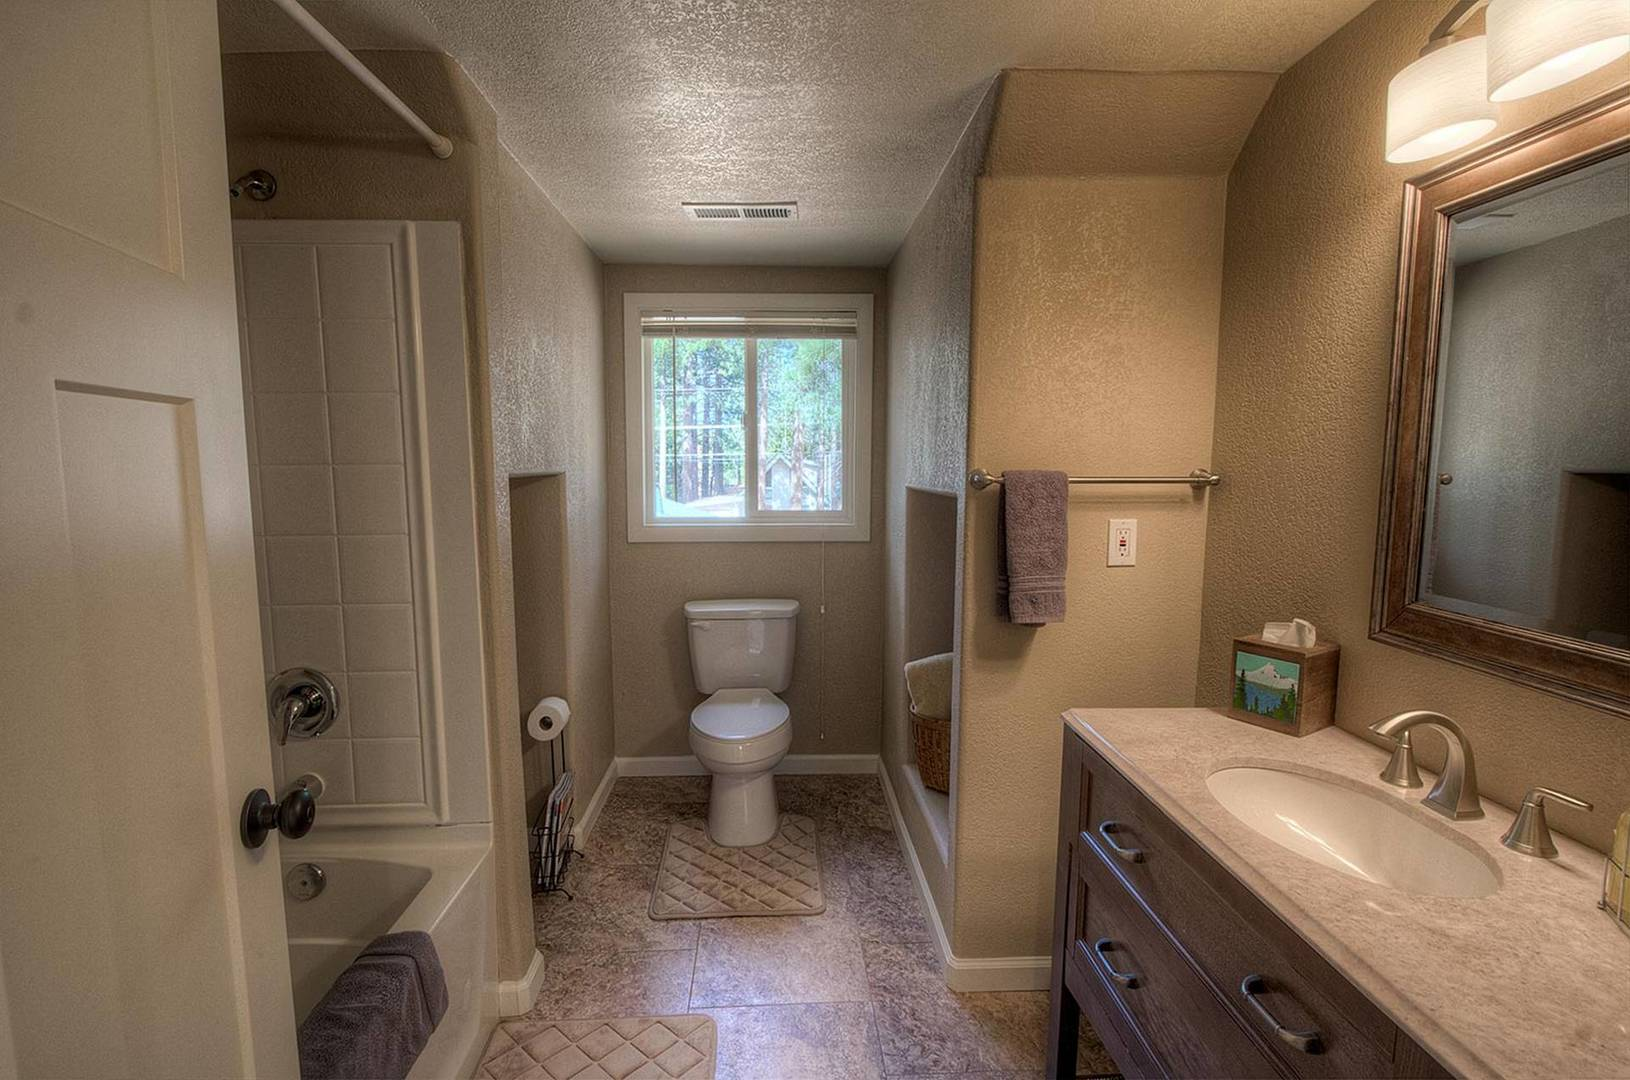 cyh1098 bathroom